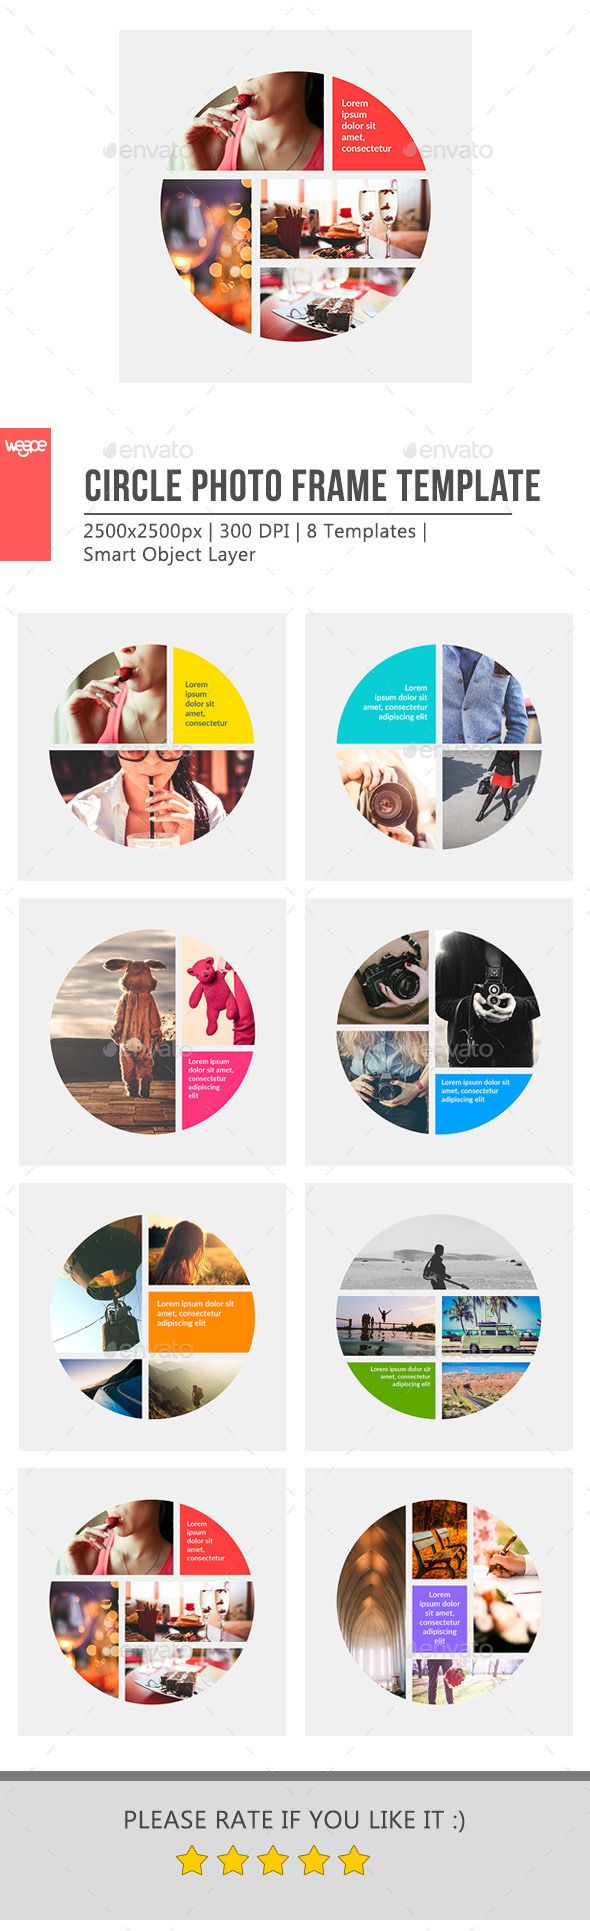 Circle Photo Frame Template | Anuarios, Diseño editorial y Editorial